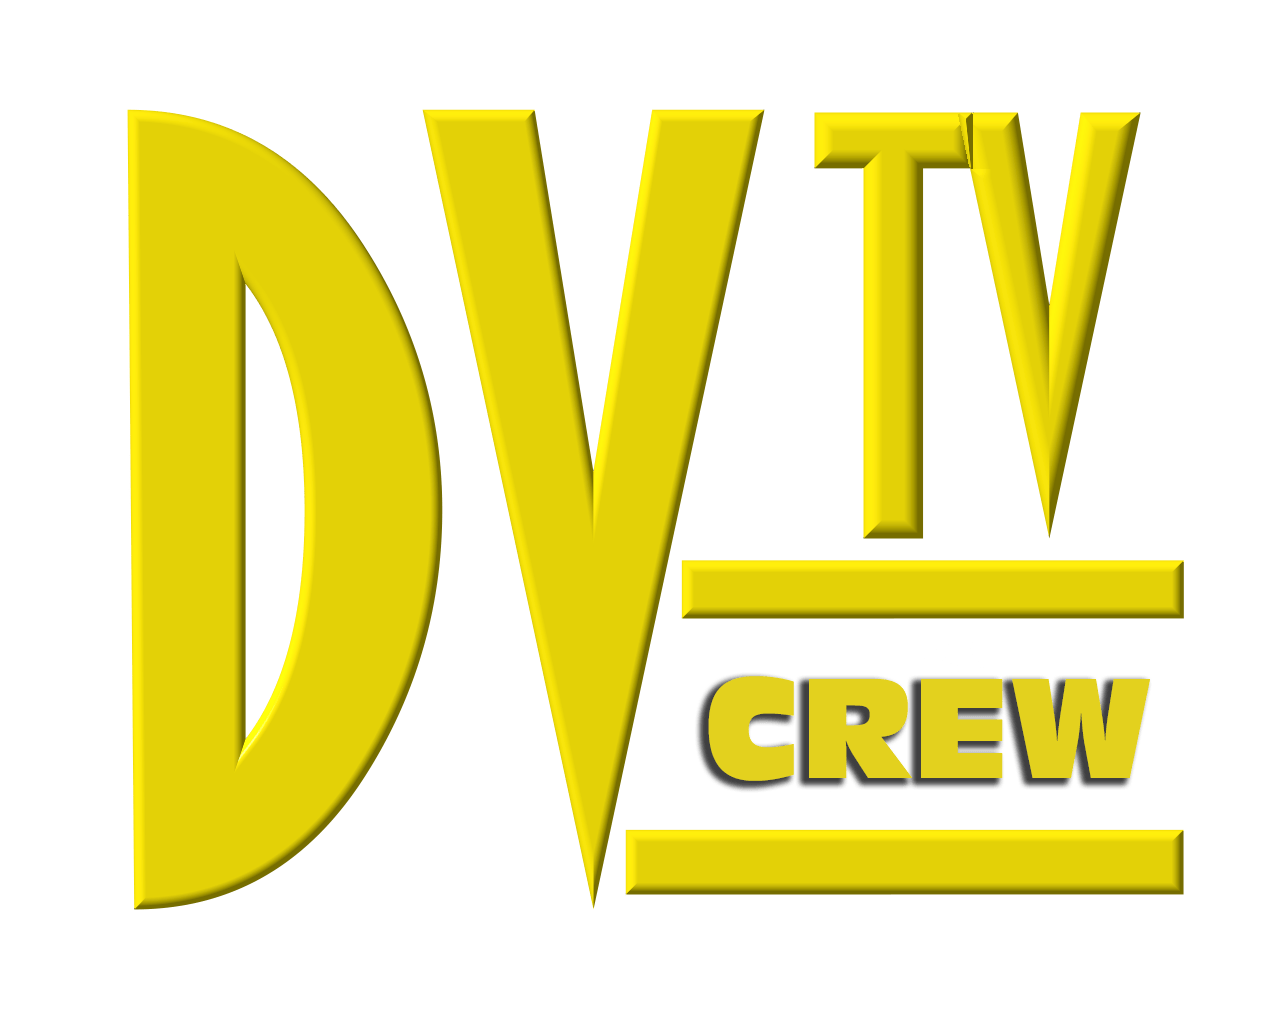 DVcrew Scotland - Not Your Average Crew